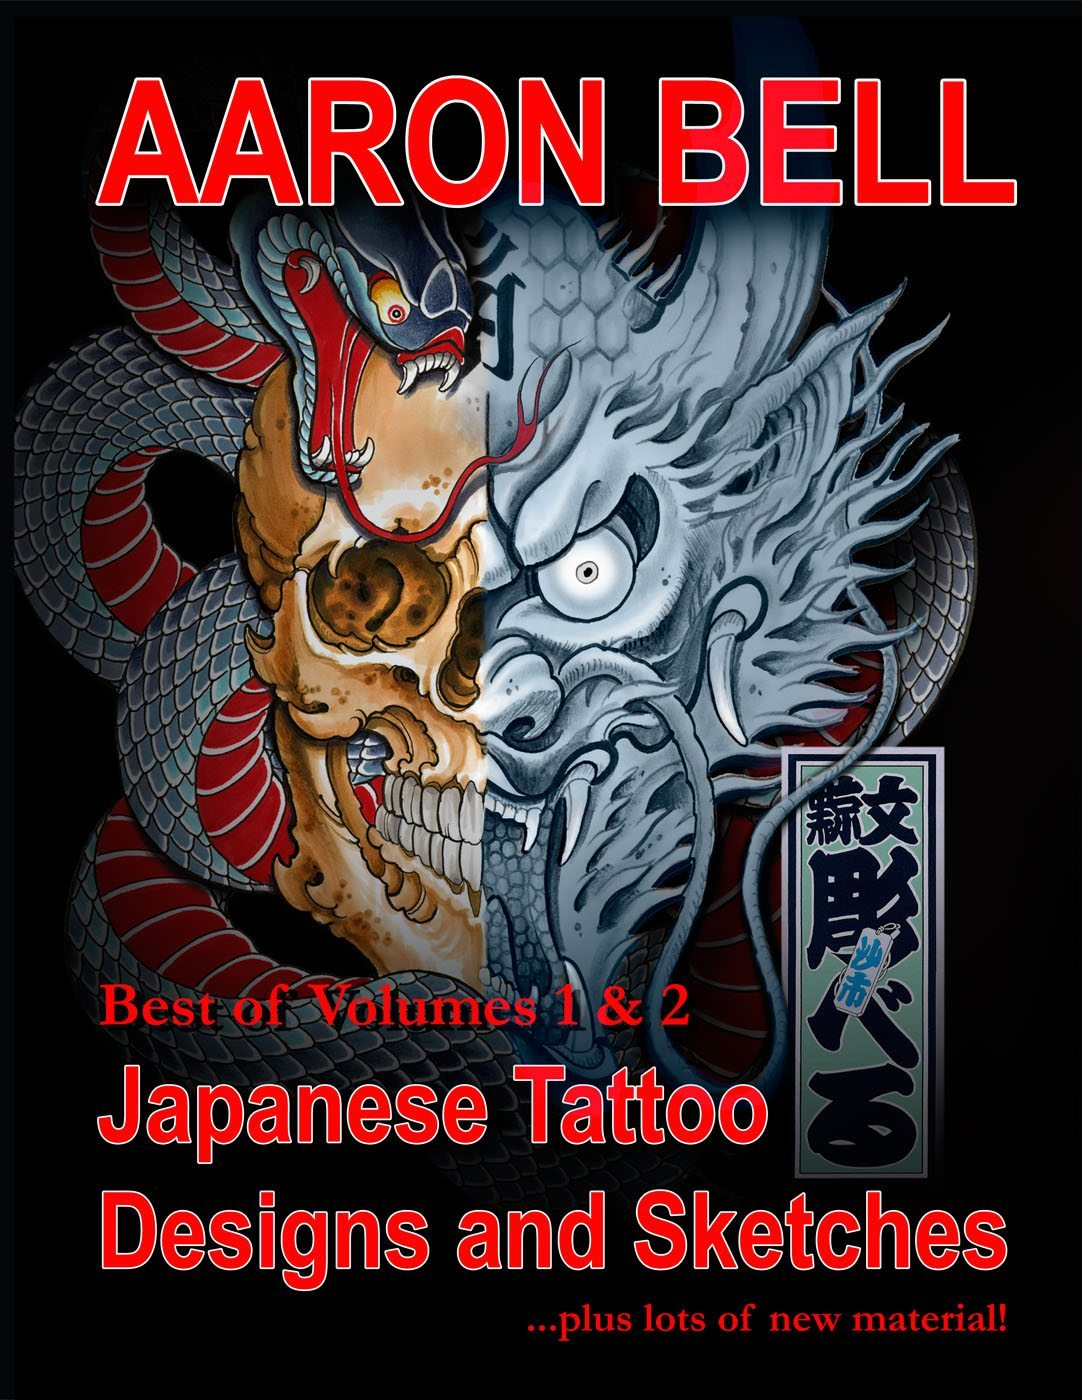 aaron bell japanese tattoo designs sketches best of vol 1 2 slave to the needle. Black Bedroom Furniture Sets. Home Design Ideas